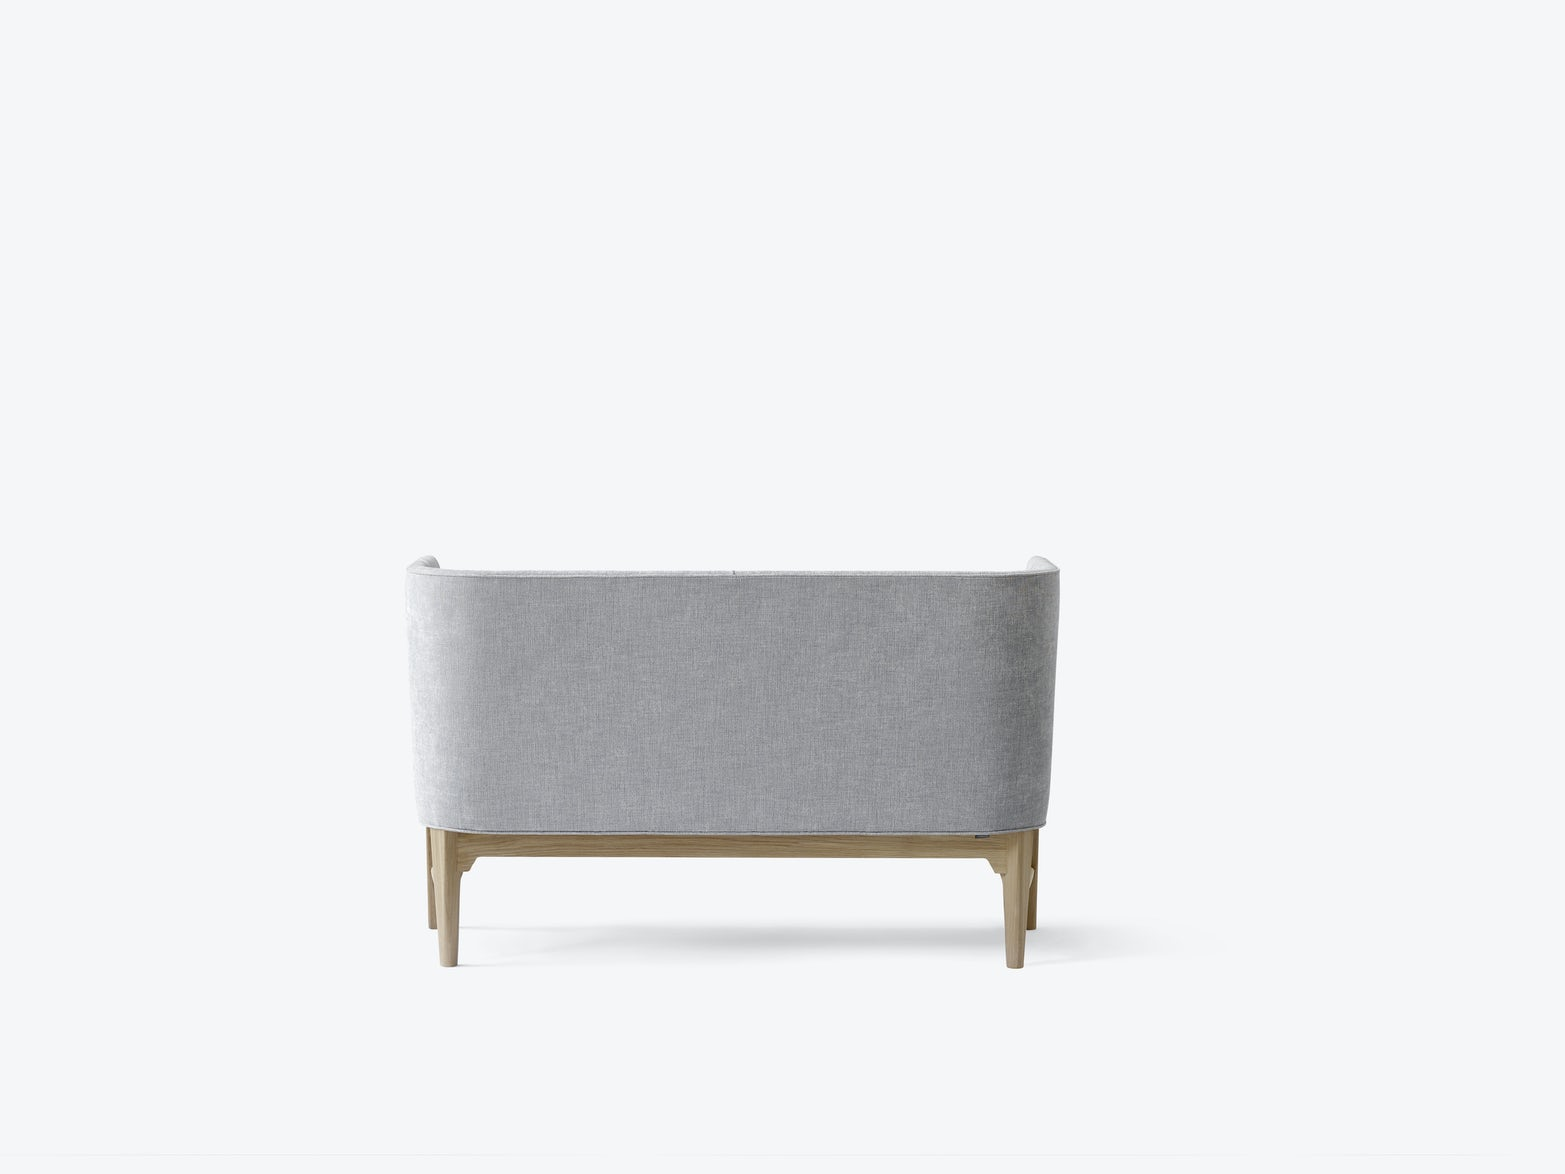 Mayor-sofa-AJ6-Arne-Jacobsen-Flemming-Lassen-andtradition-5